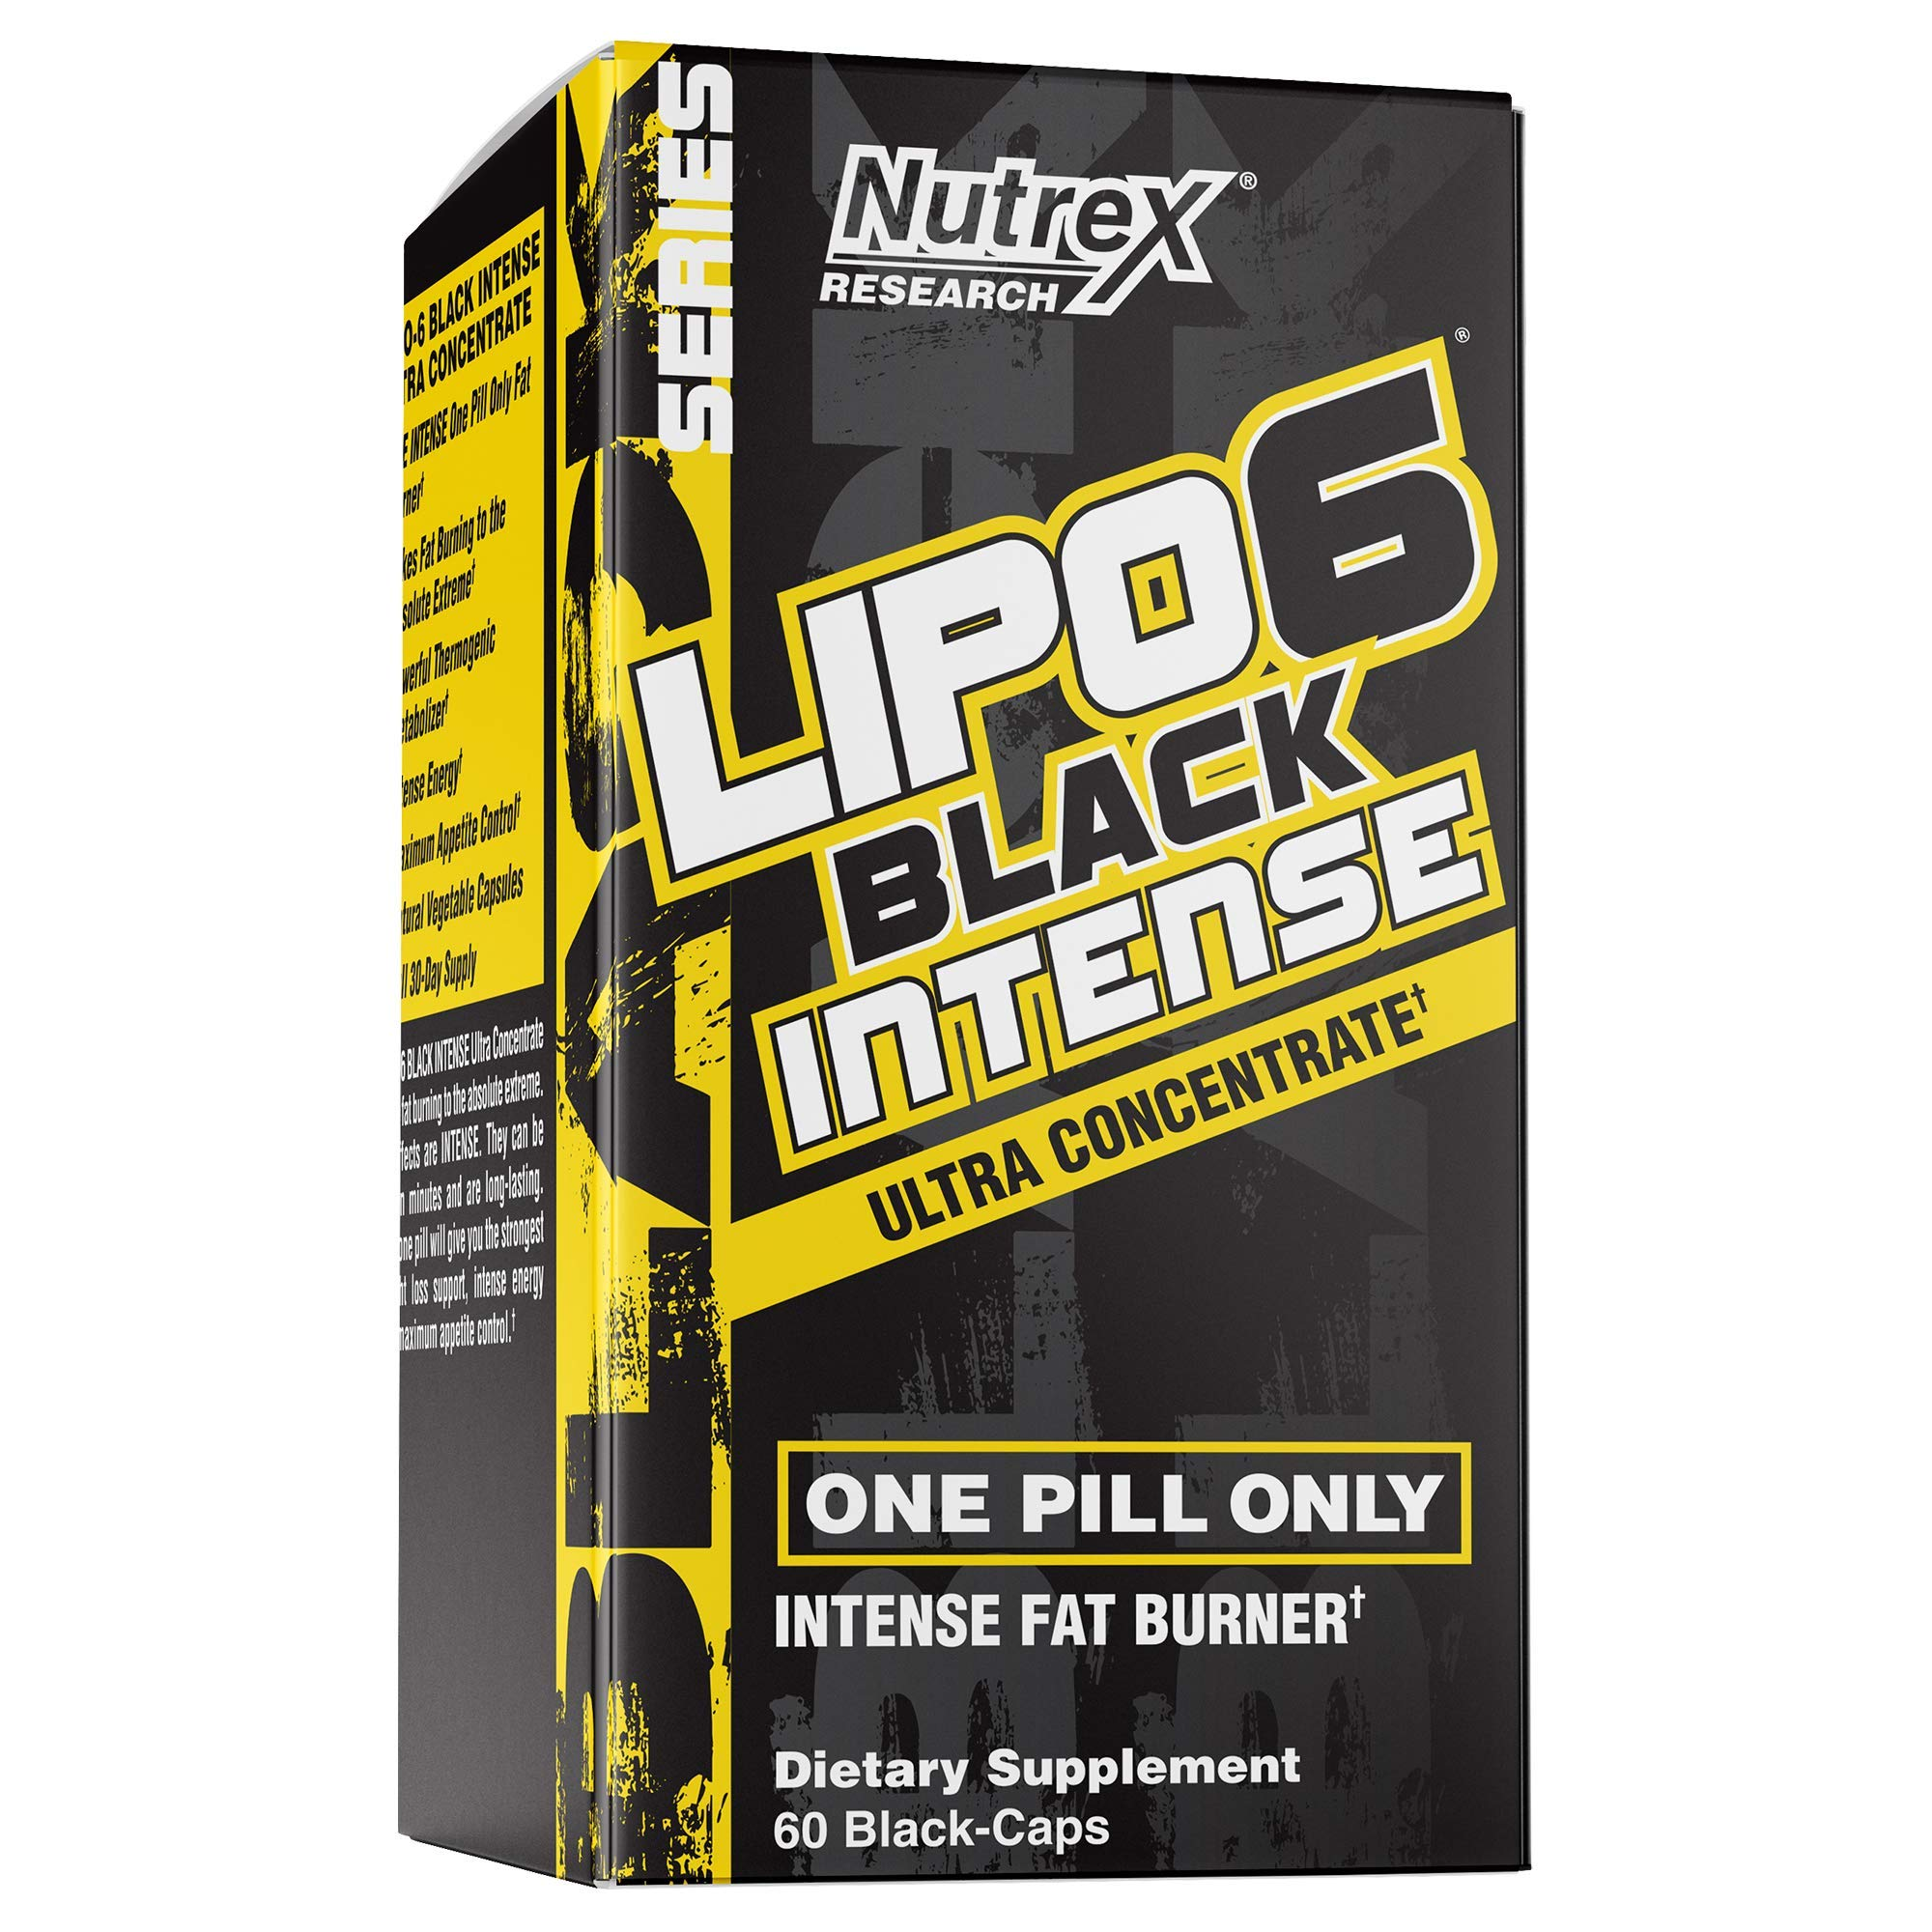 Nutrex Research Lipo-6 Black Intense Ultra Concentrate | Intense Thermogenic Fat Burner & Weightloss Support | Caffeine, Tyrosine, Paradoxine, Theobromine | 60 Count by Nutrex Research